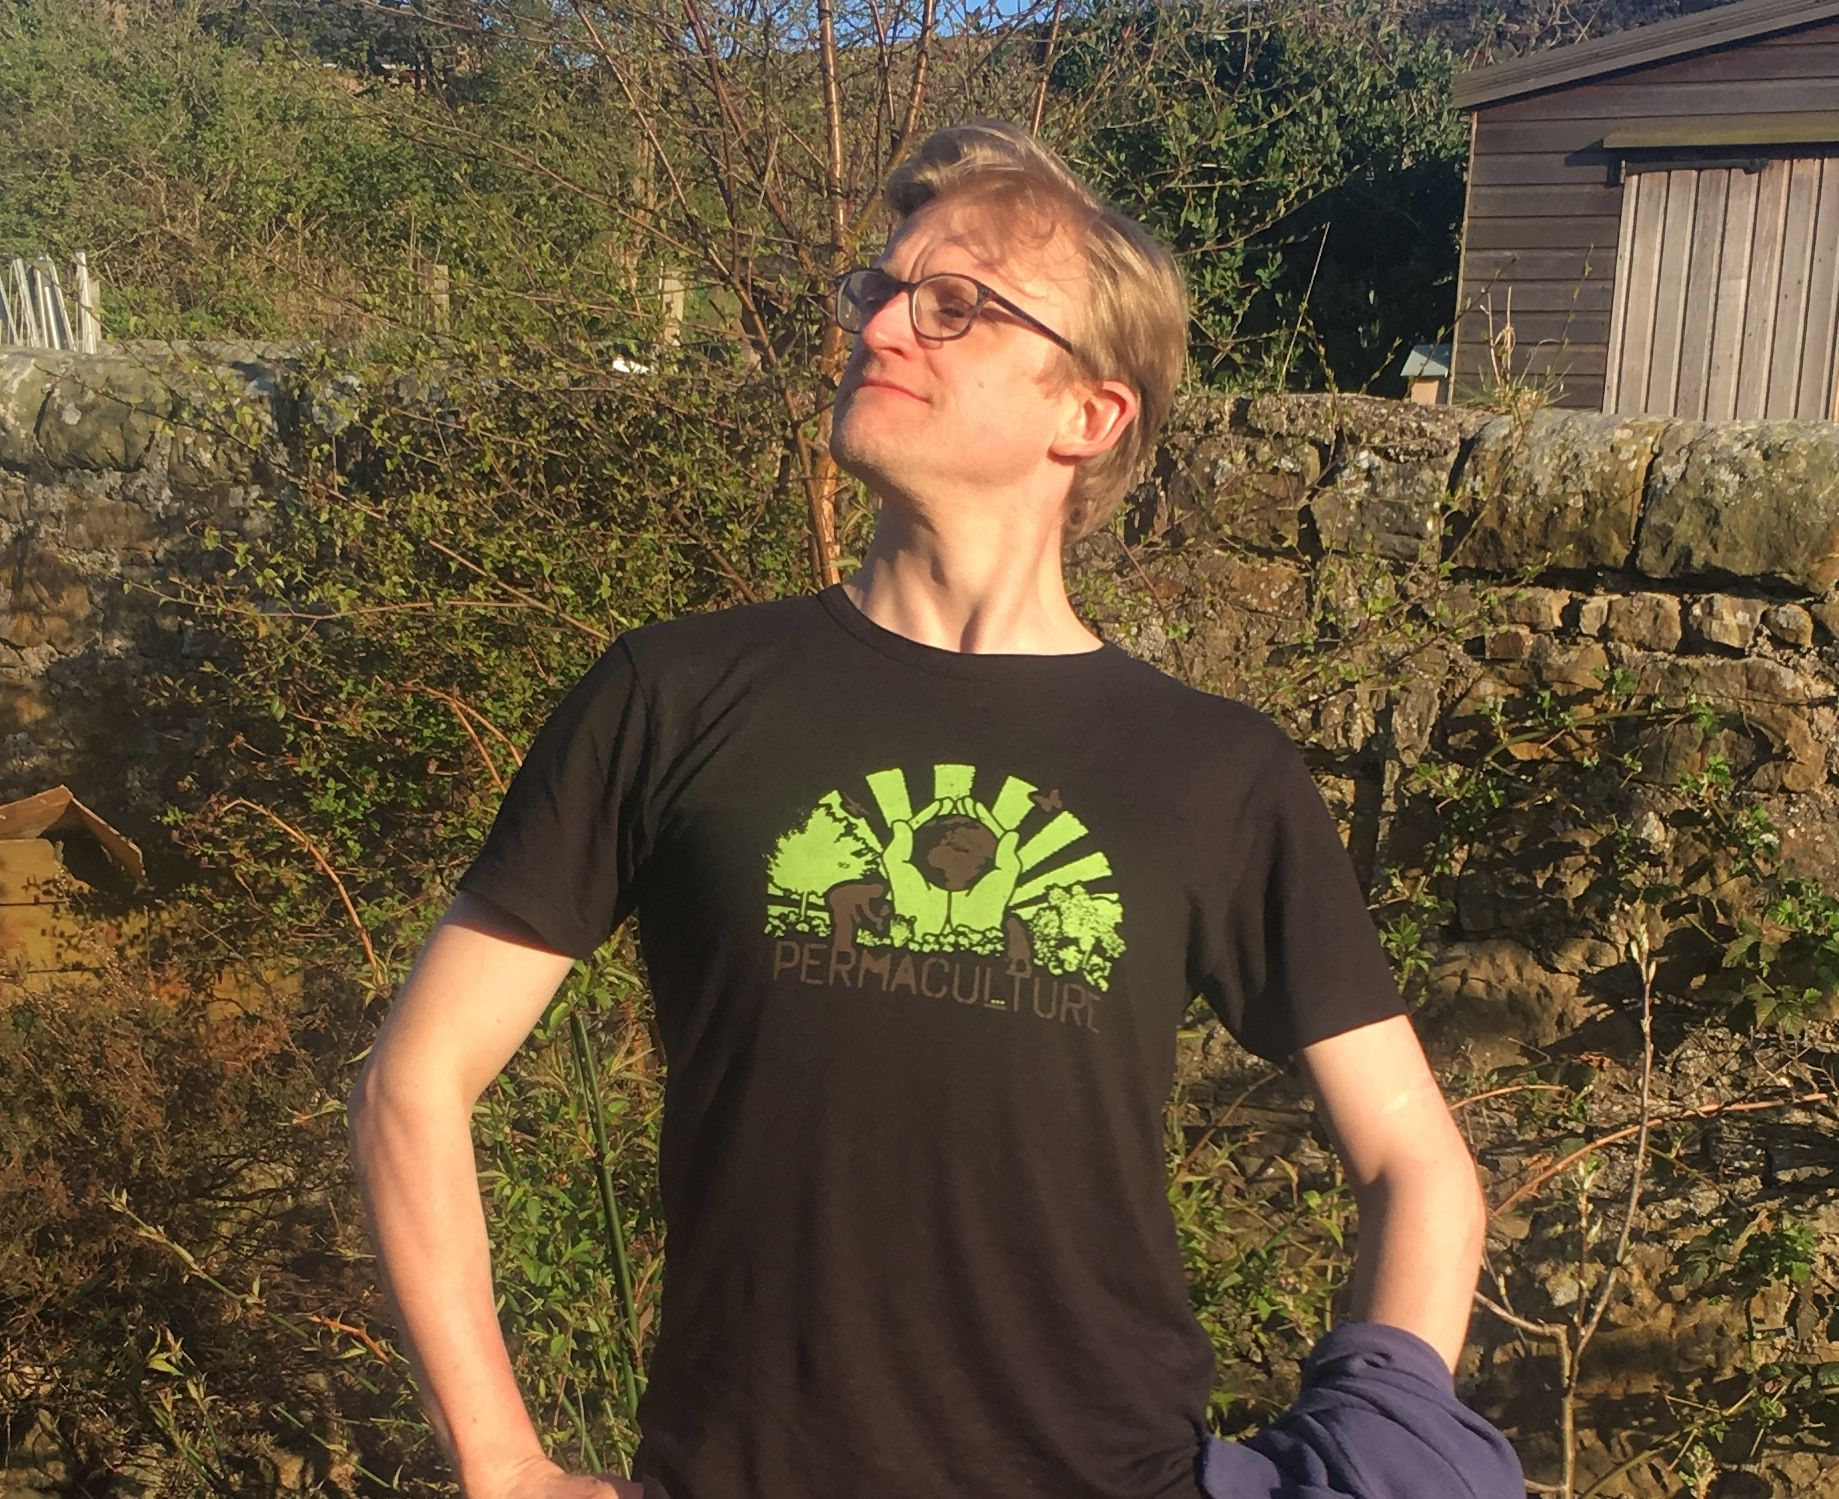 Permaculture Scotland T-shirt in black